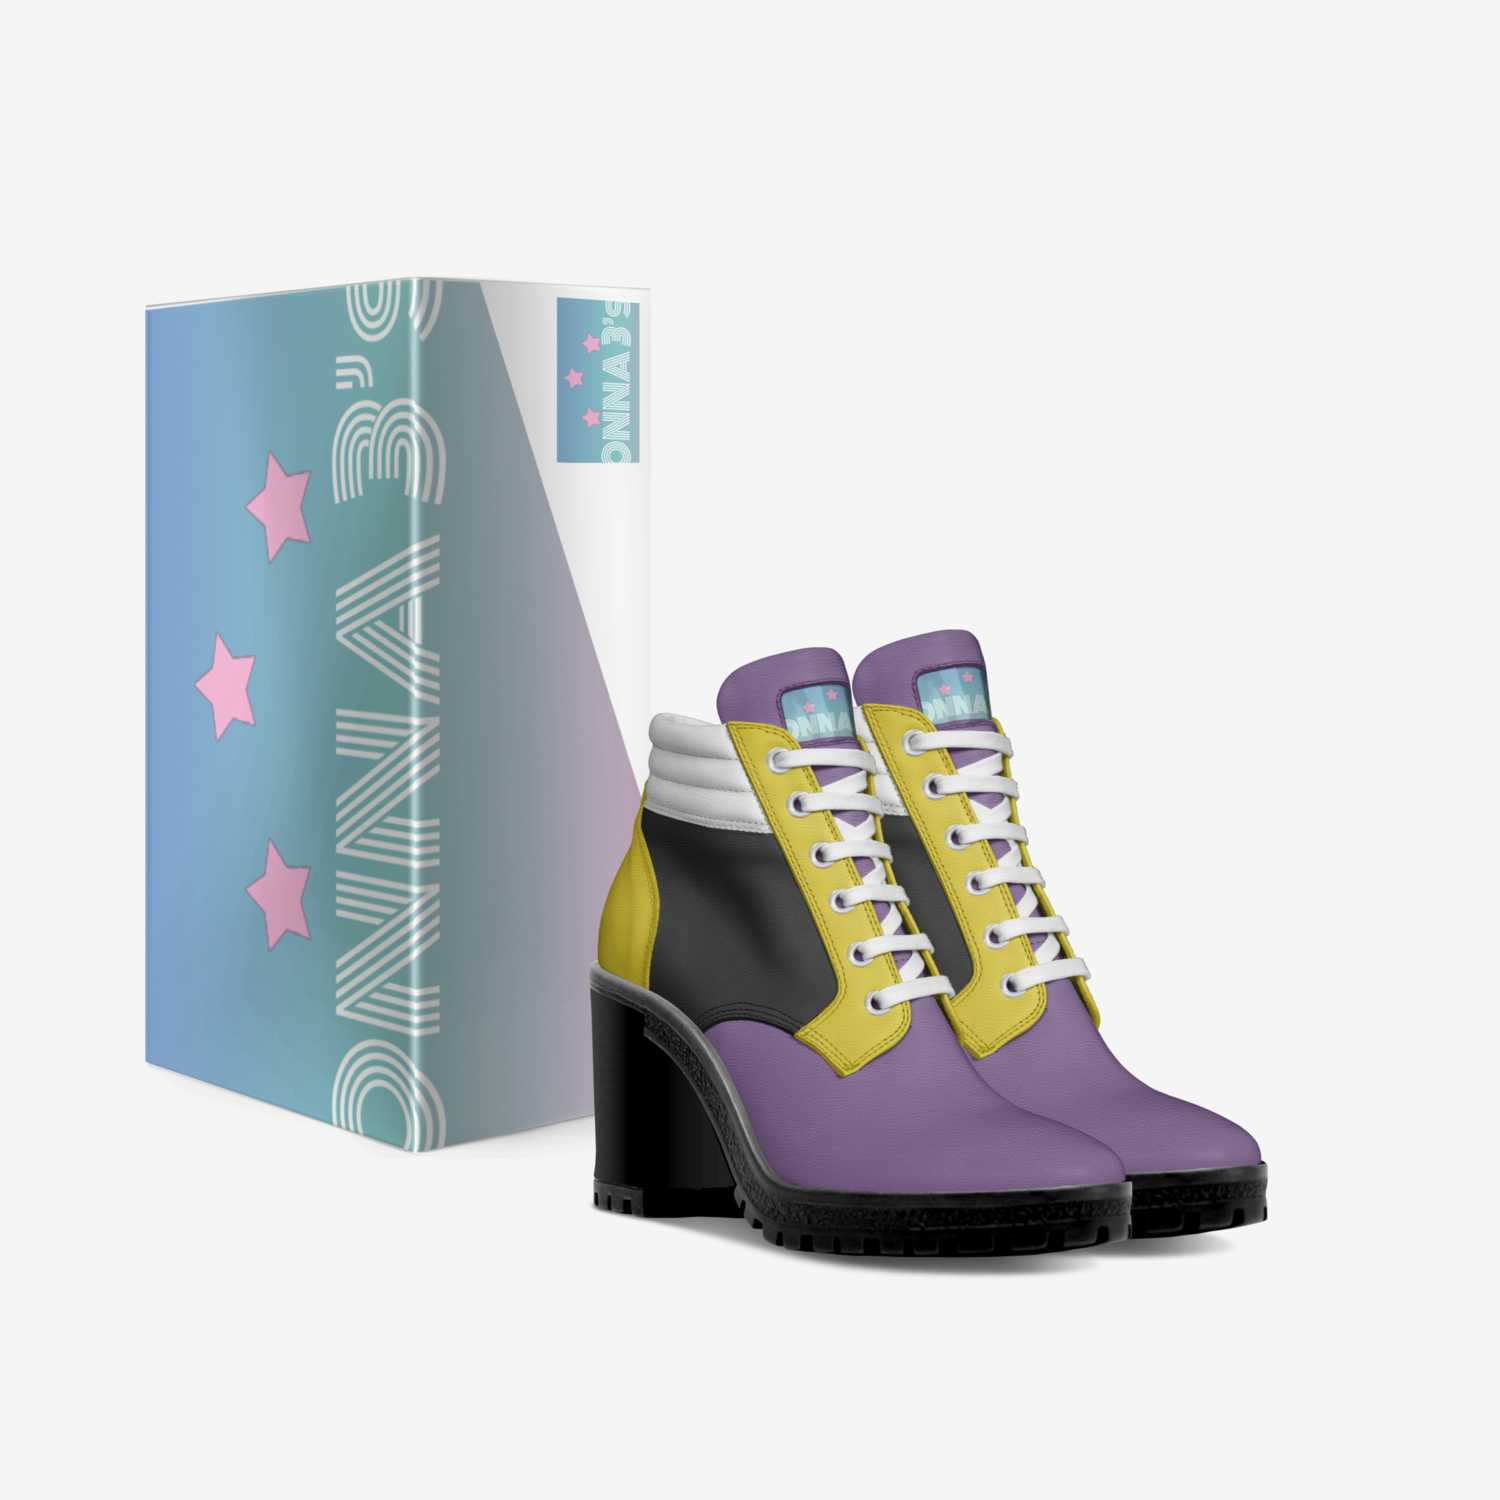 Onna3s custom made in Italy shoes by Britni Monet | Box view